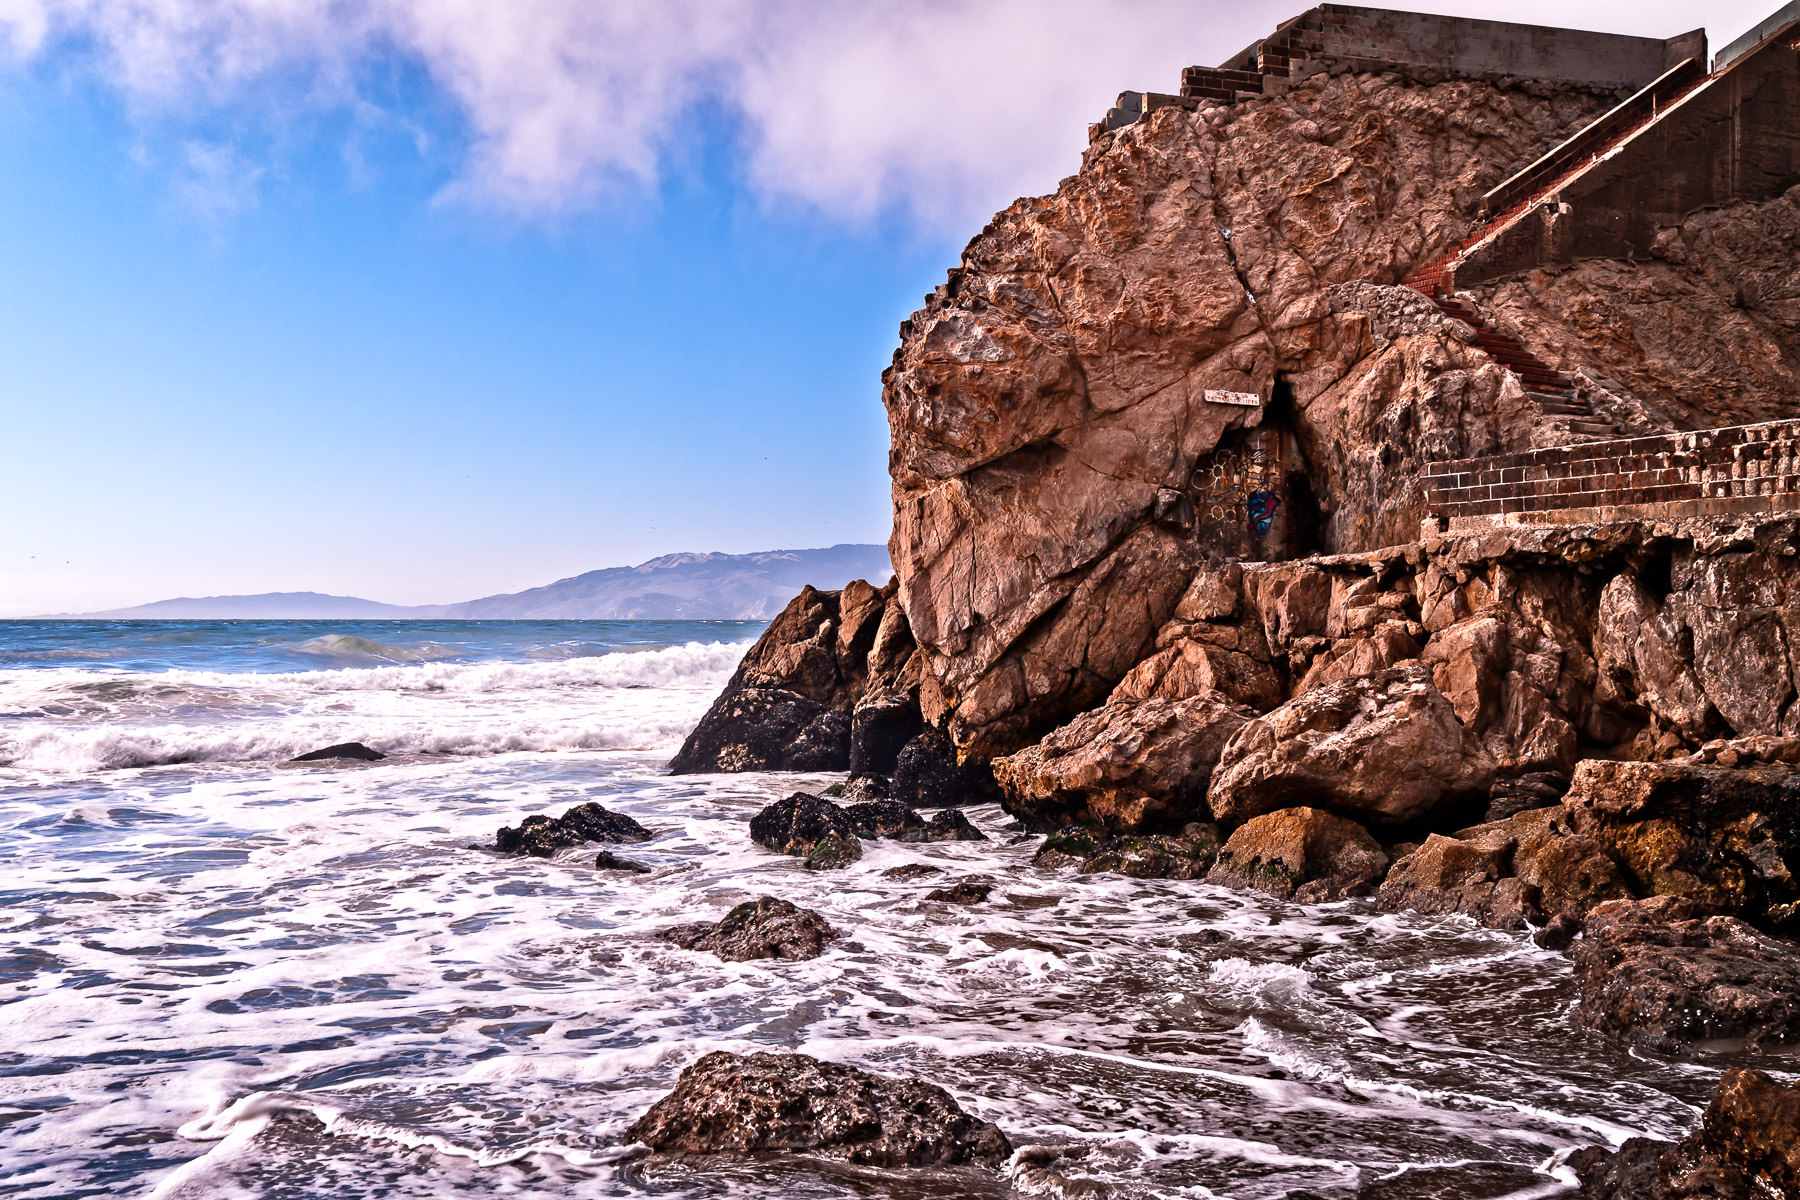 Part of the ruins of San Francisco's Sutro Baths sit perched above the roiling waves of the Pacific Ocean at Lands End.